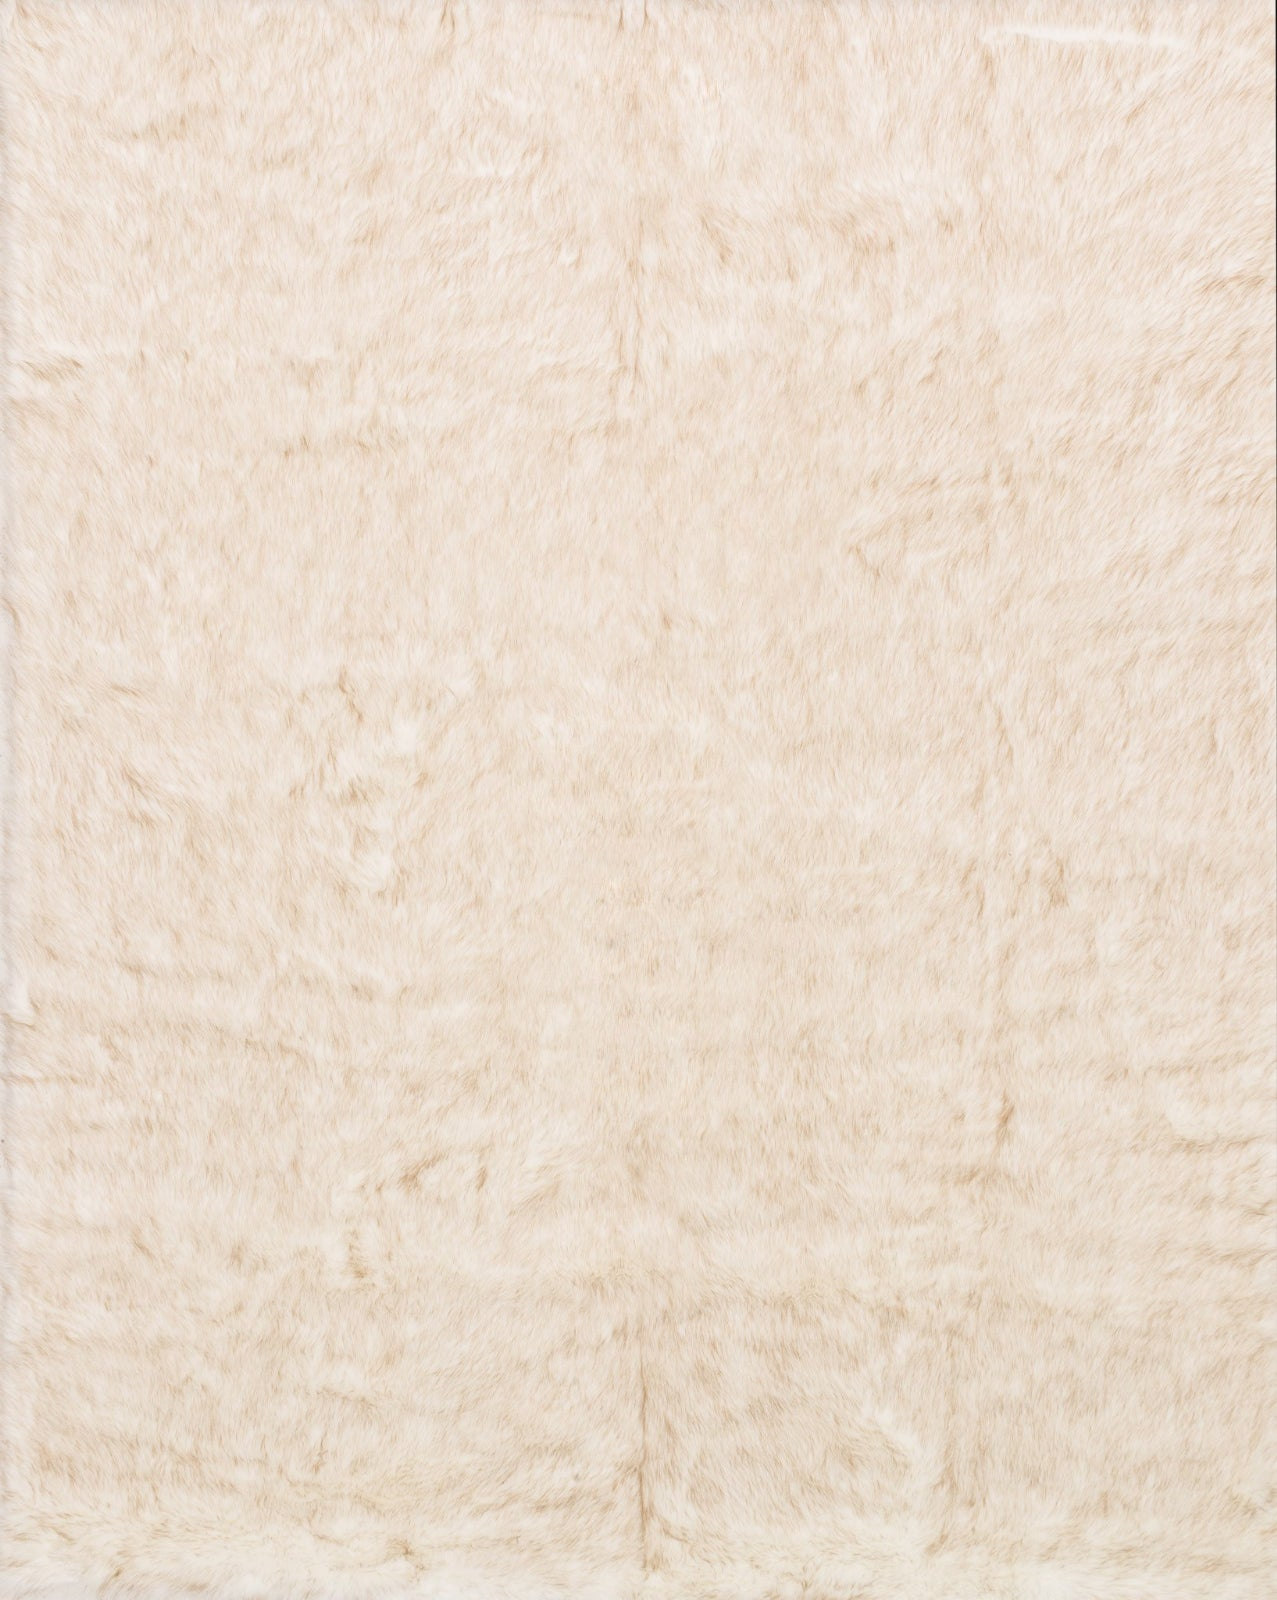 Loloi Finley FN-01 Ivory / Beige Area Rug main image